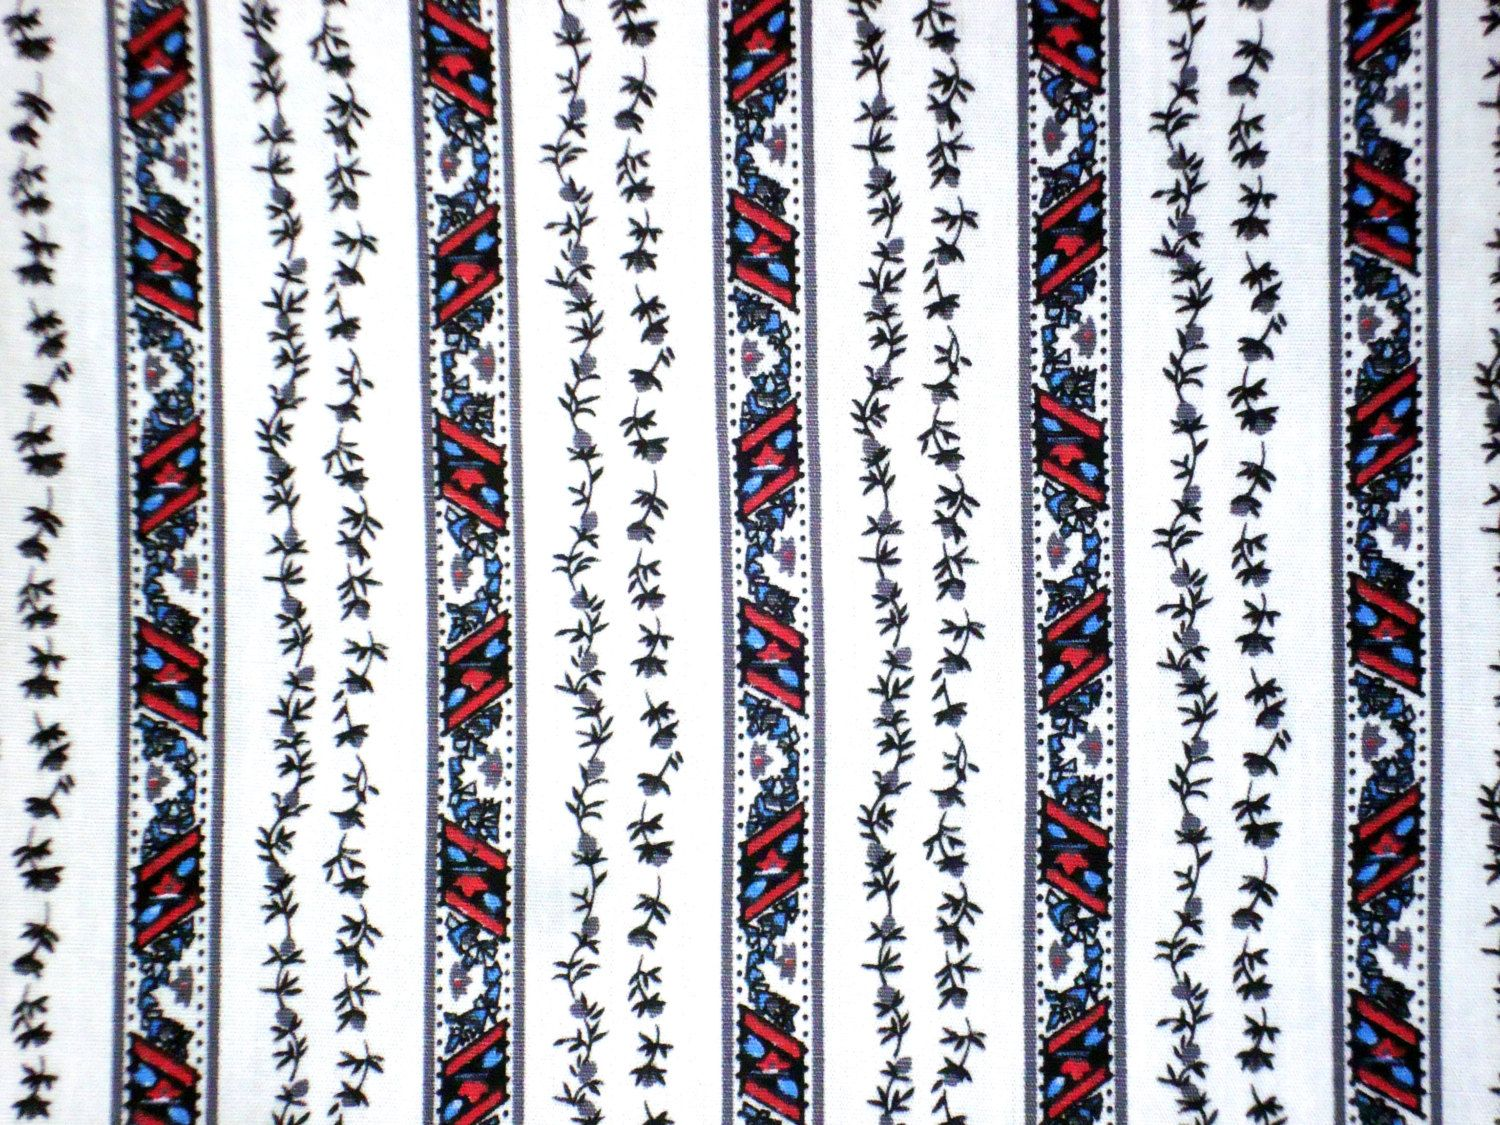 Tiny Roses Stripe on White-Grey stripe Red Blue Color-Garment supply-Men Shirt Fabric-Handcraft supply-Children wear Fabric-1Y80cm by HeavenKnow on Etsy